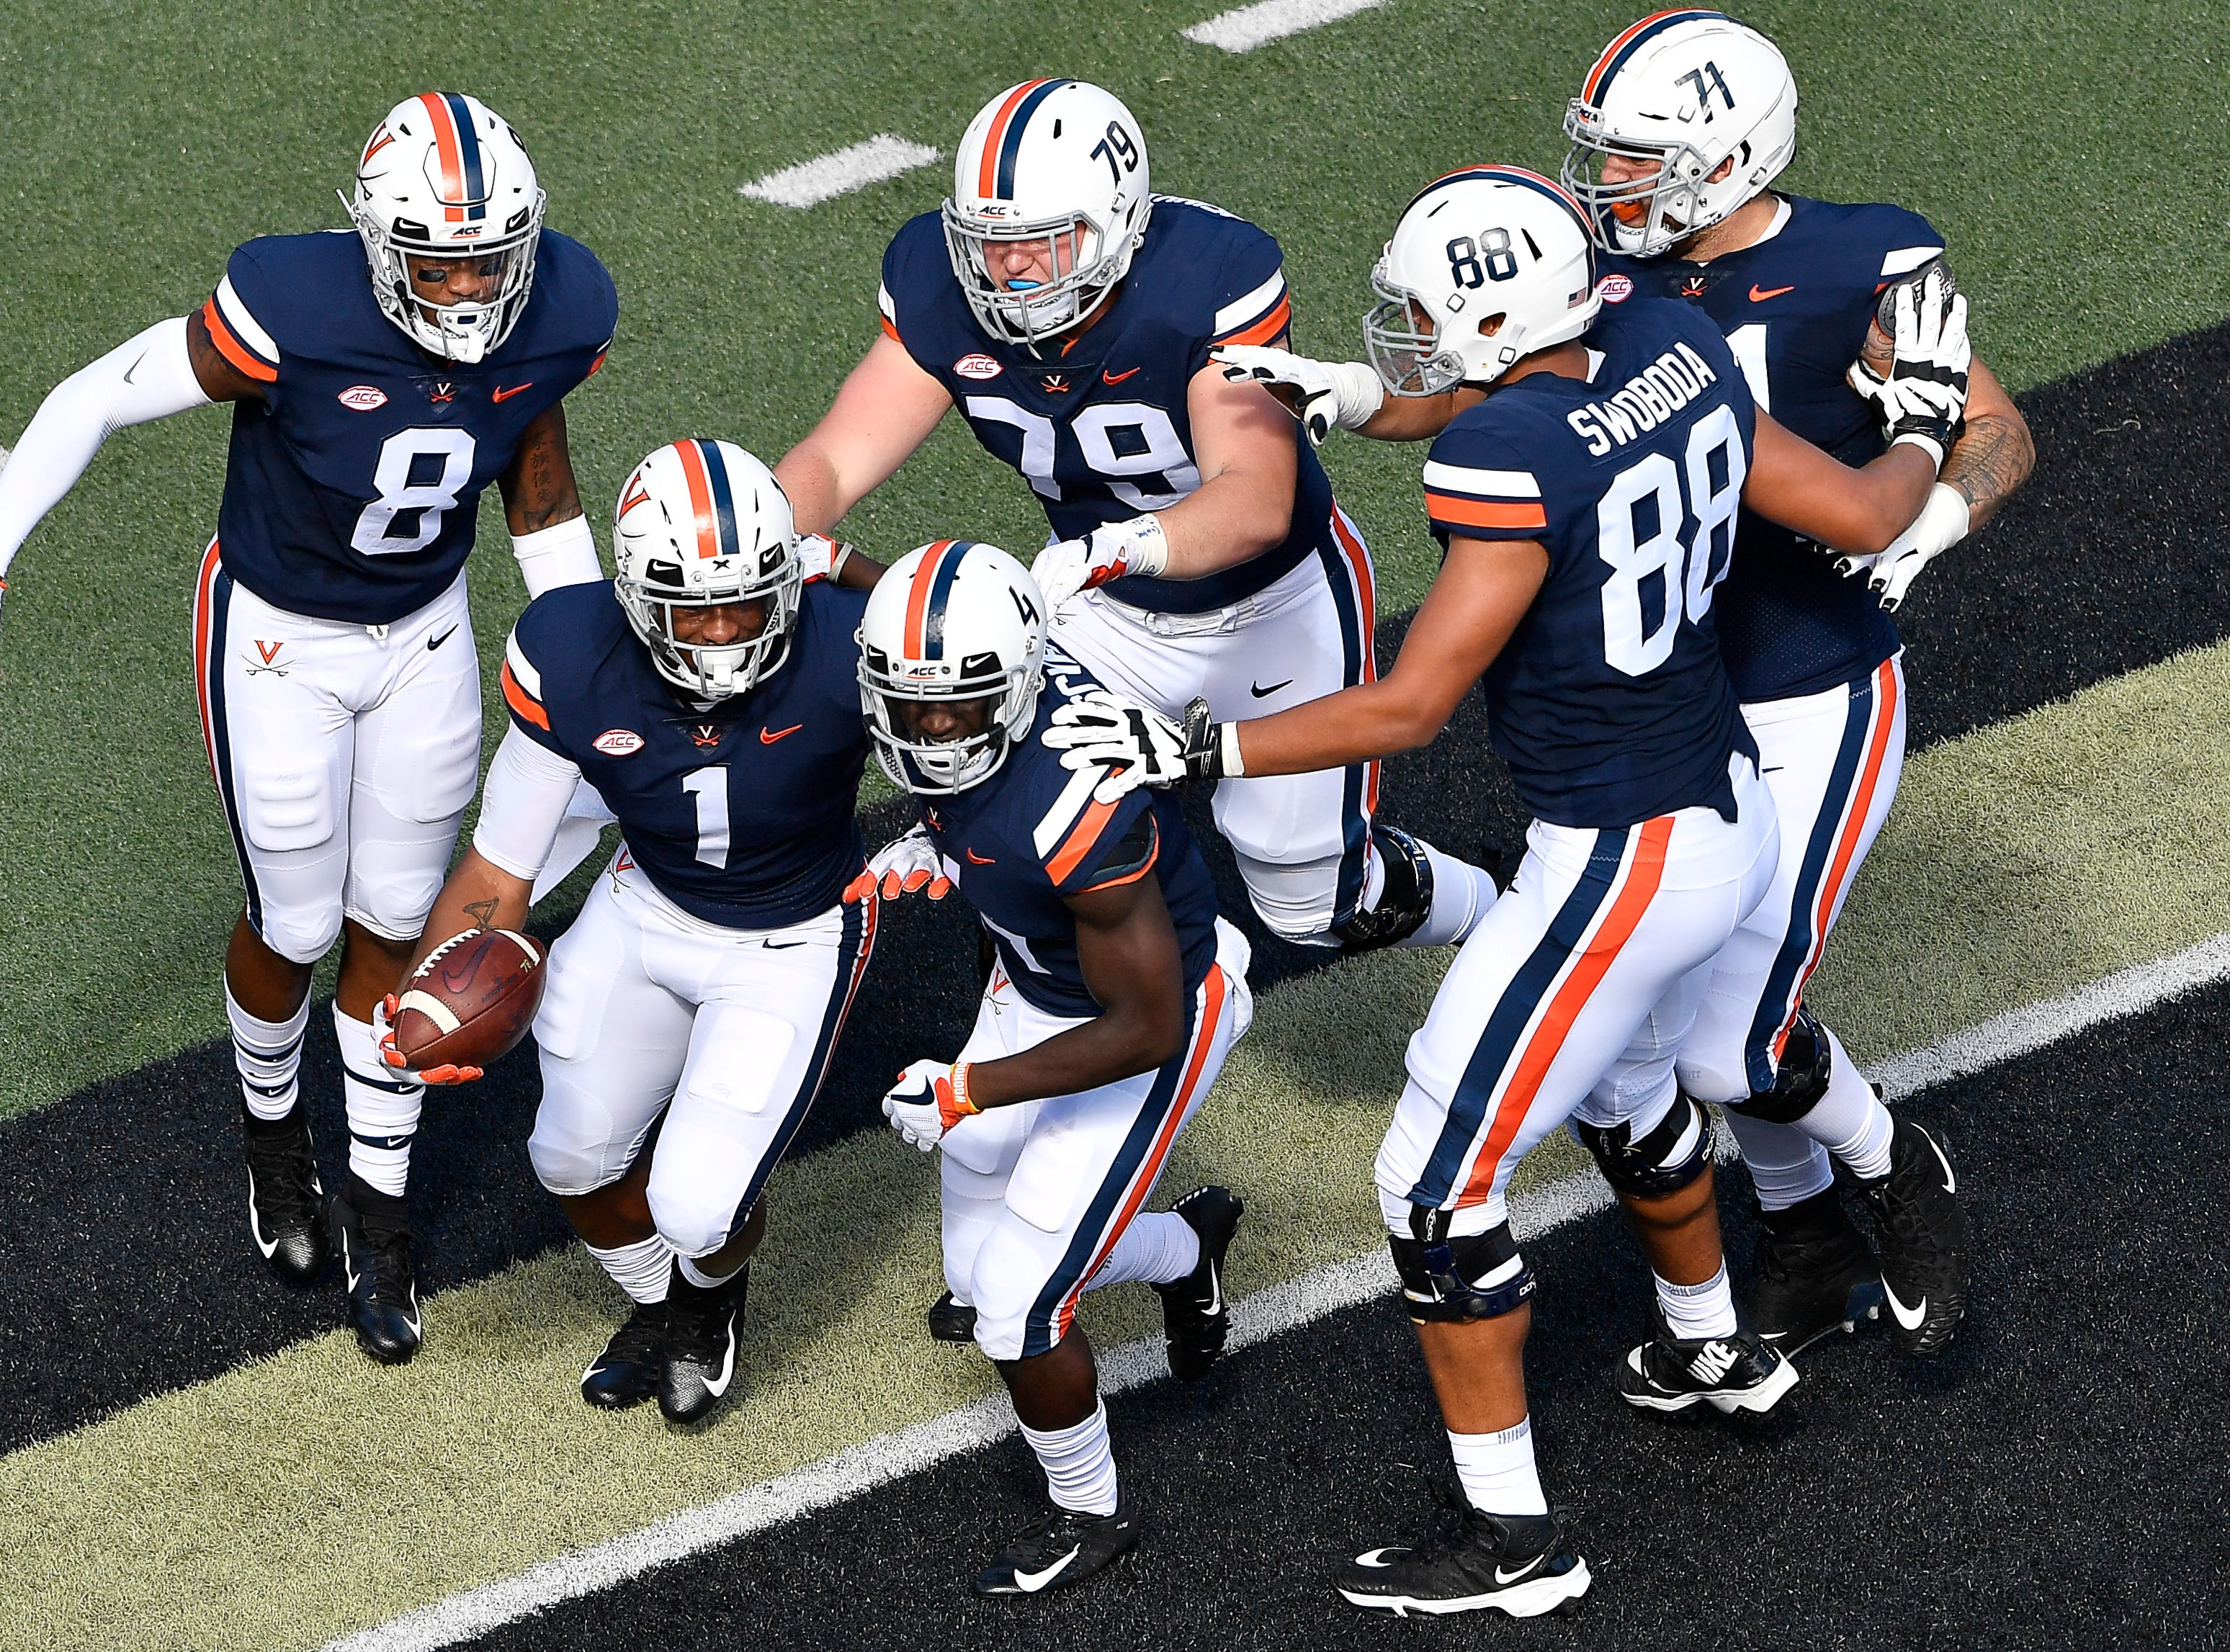 Virginia teammates congratulate Virginia running back Jordan Ellis (1) after his touchdown against Ohio during the first quarter at Vanderbilt Stadium Saturday, Sept. 15, 2018, in Nashville, Tenn.